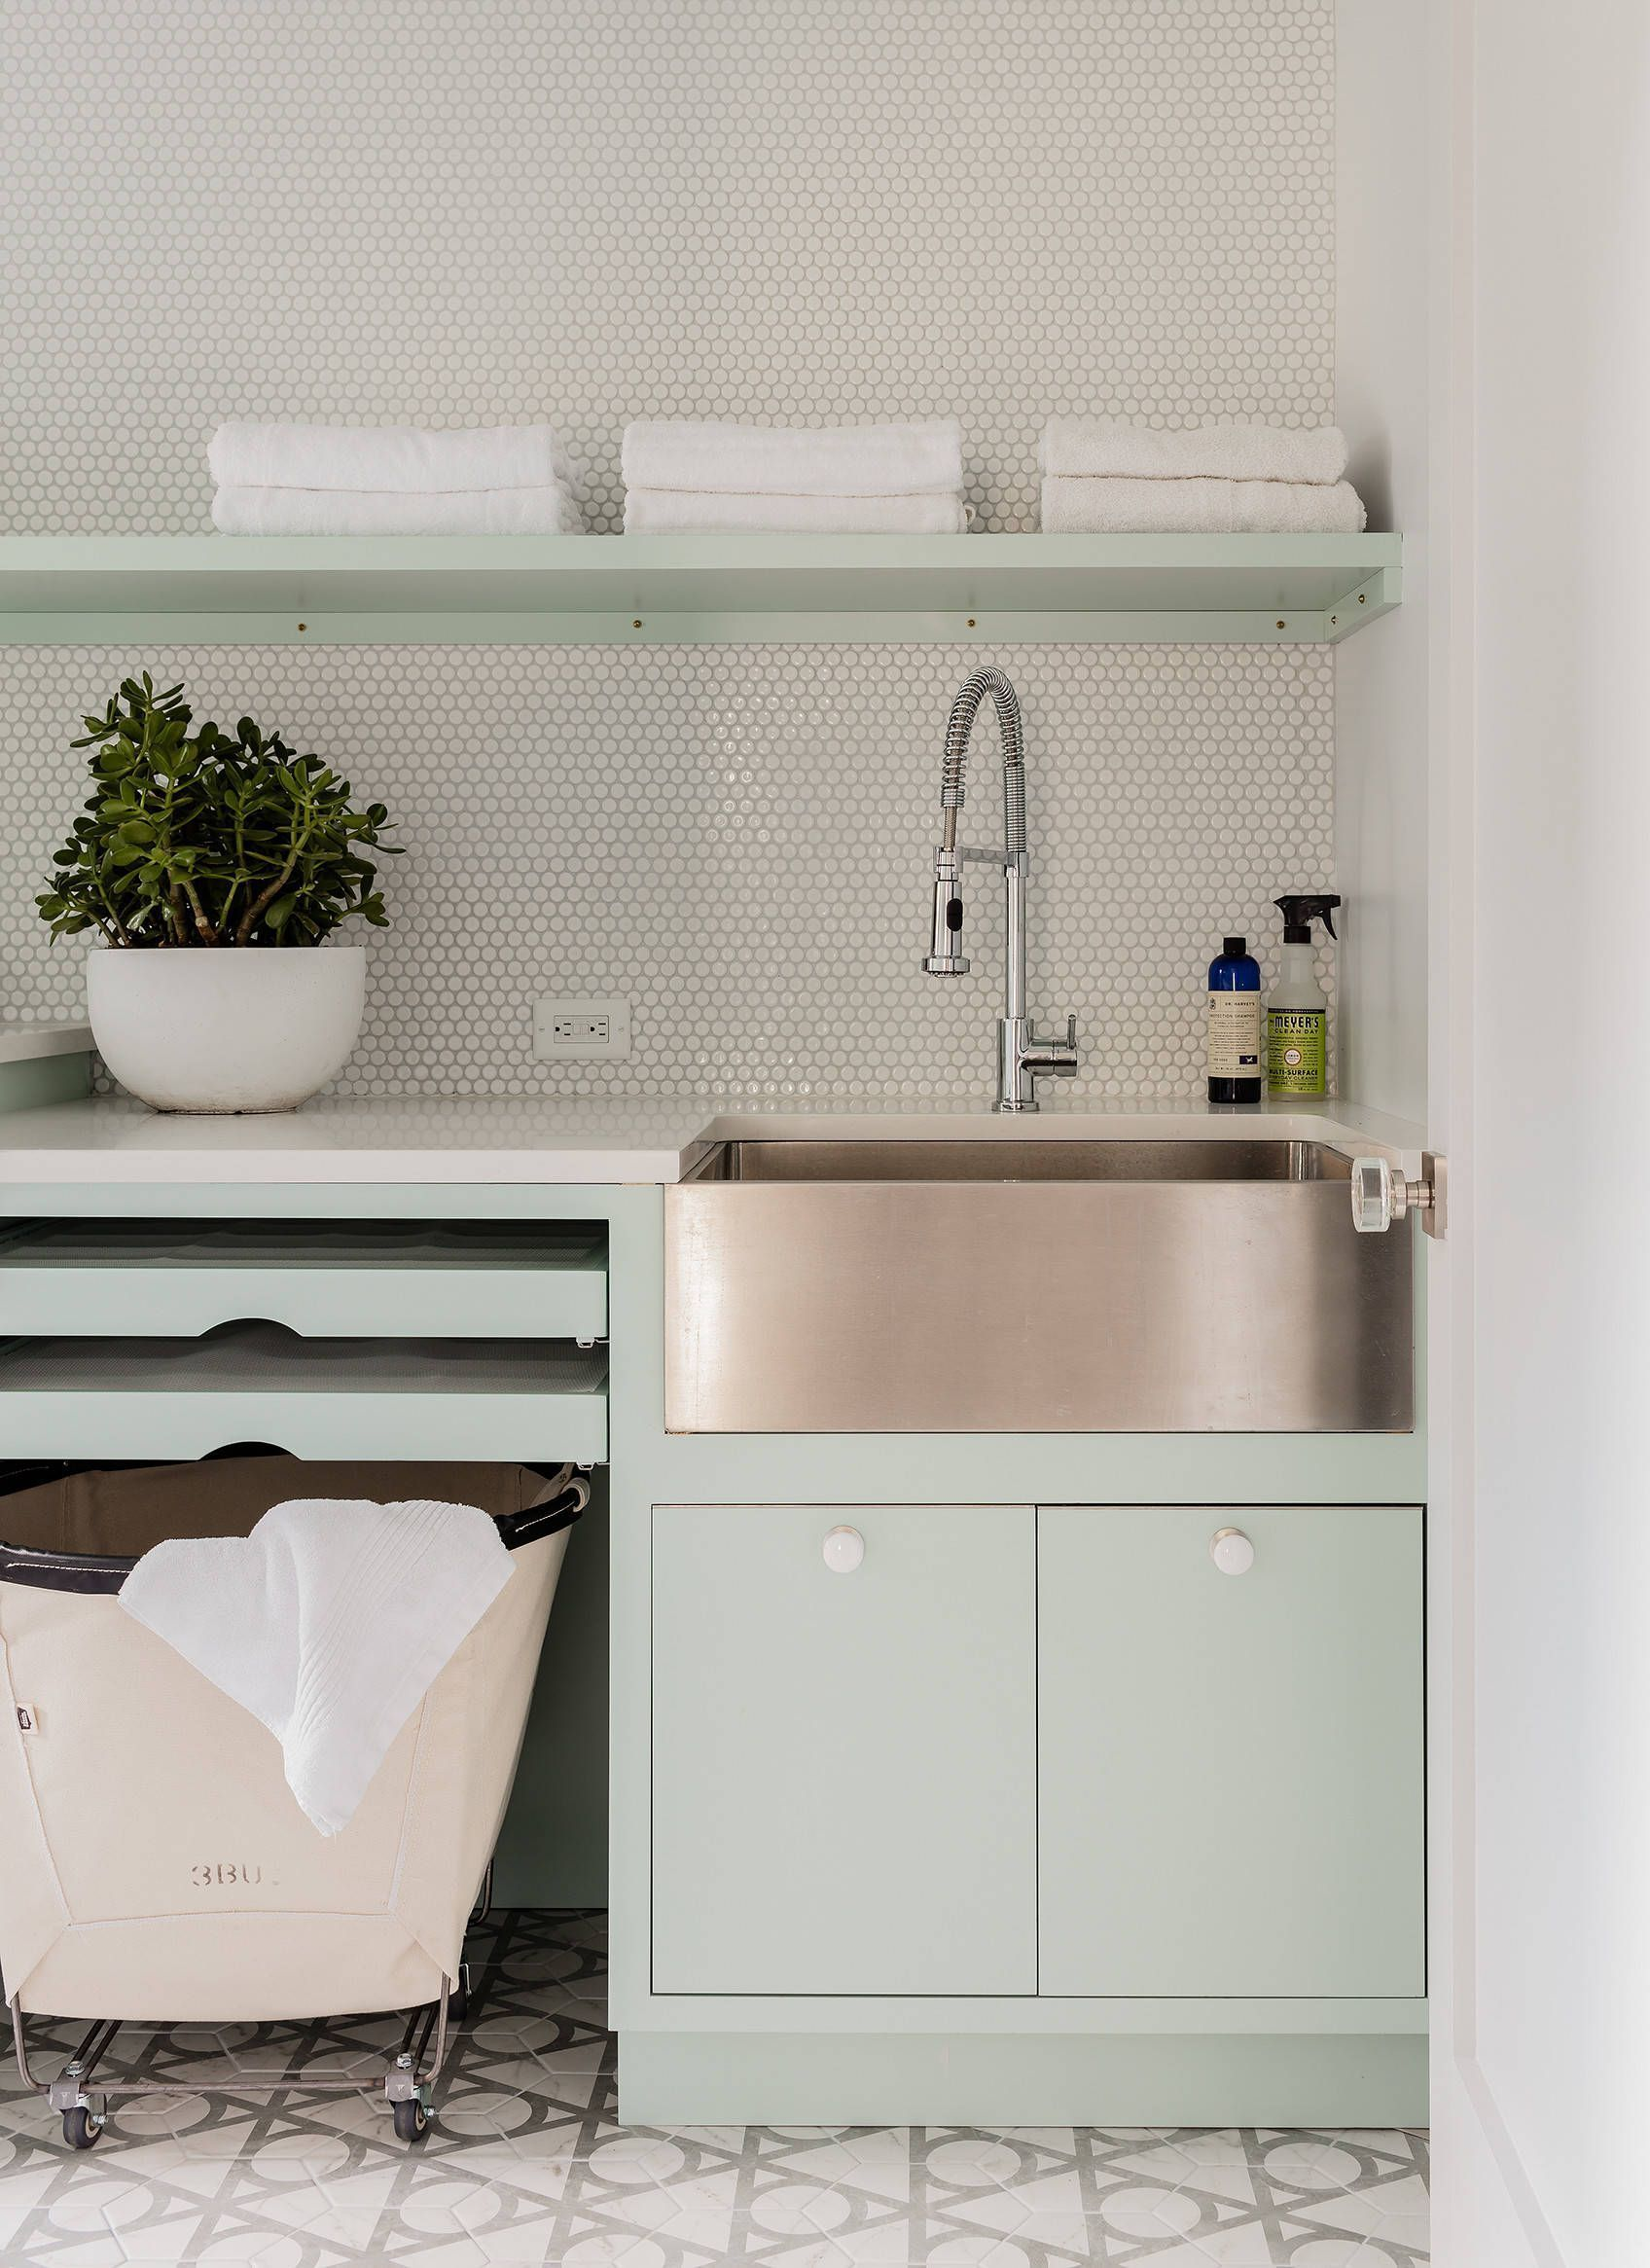 36 Great Laundry Room Design Ideas#Home #Homedesign #Homedesignideas #Homedecorideas #